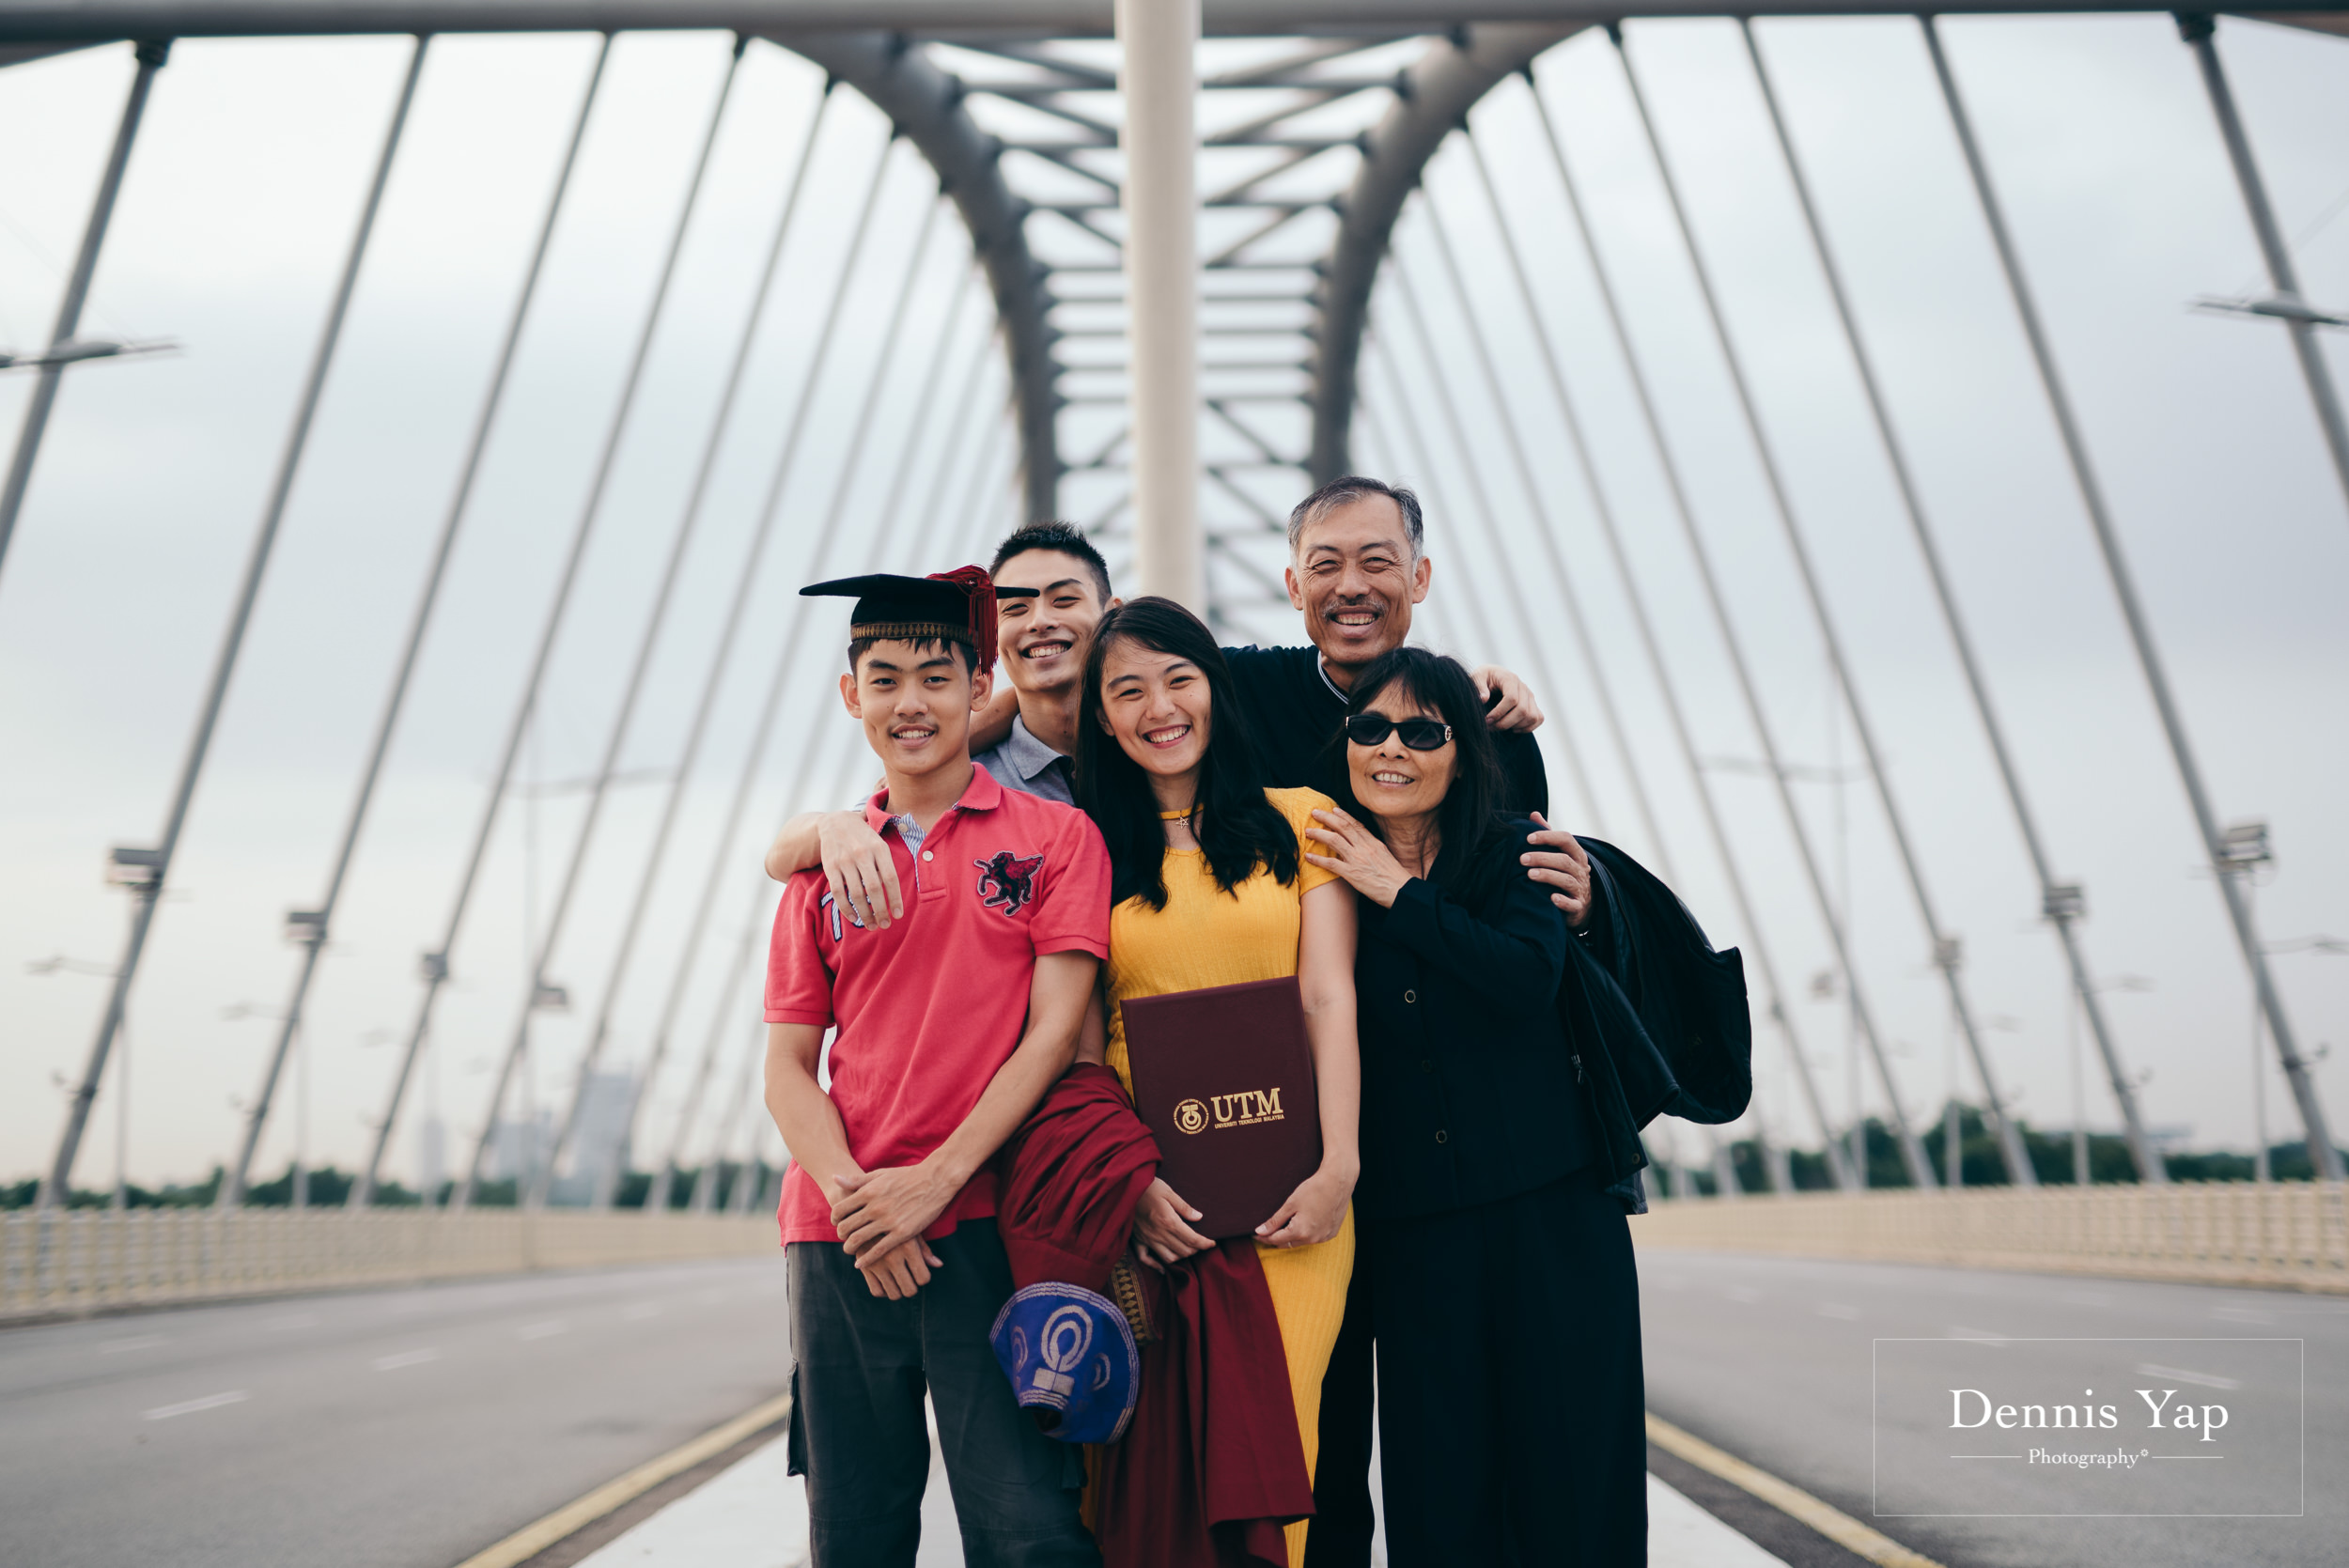 Tieng Wei graduation portrait putrajaya dennis yap photography family portraiture beloved uitm-124.jpg